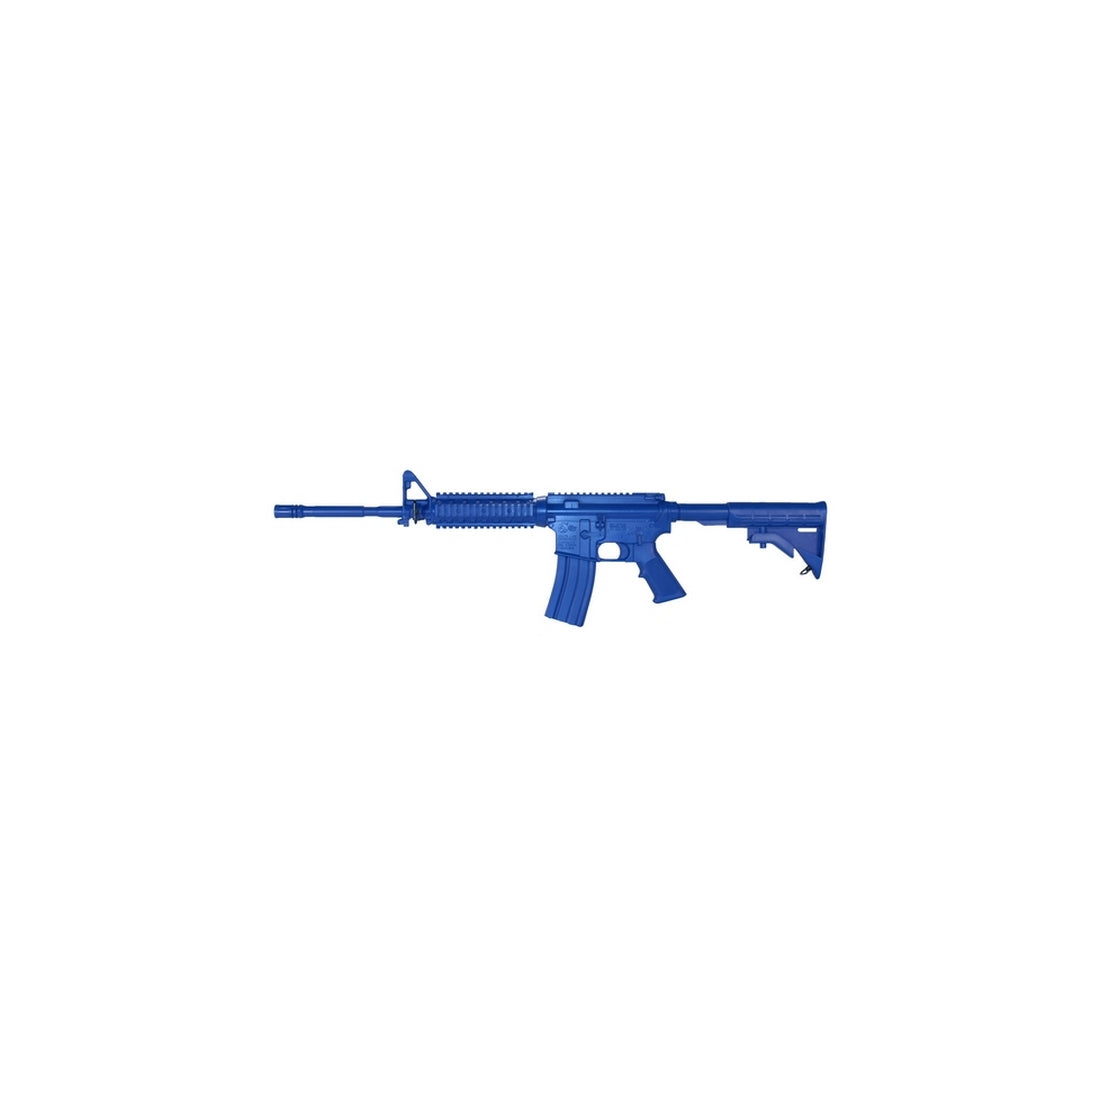 Blueguns FSM4FTRAS M4 Flat Top, Fwd Rail W/Adjustable Stock